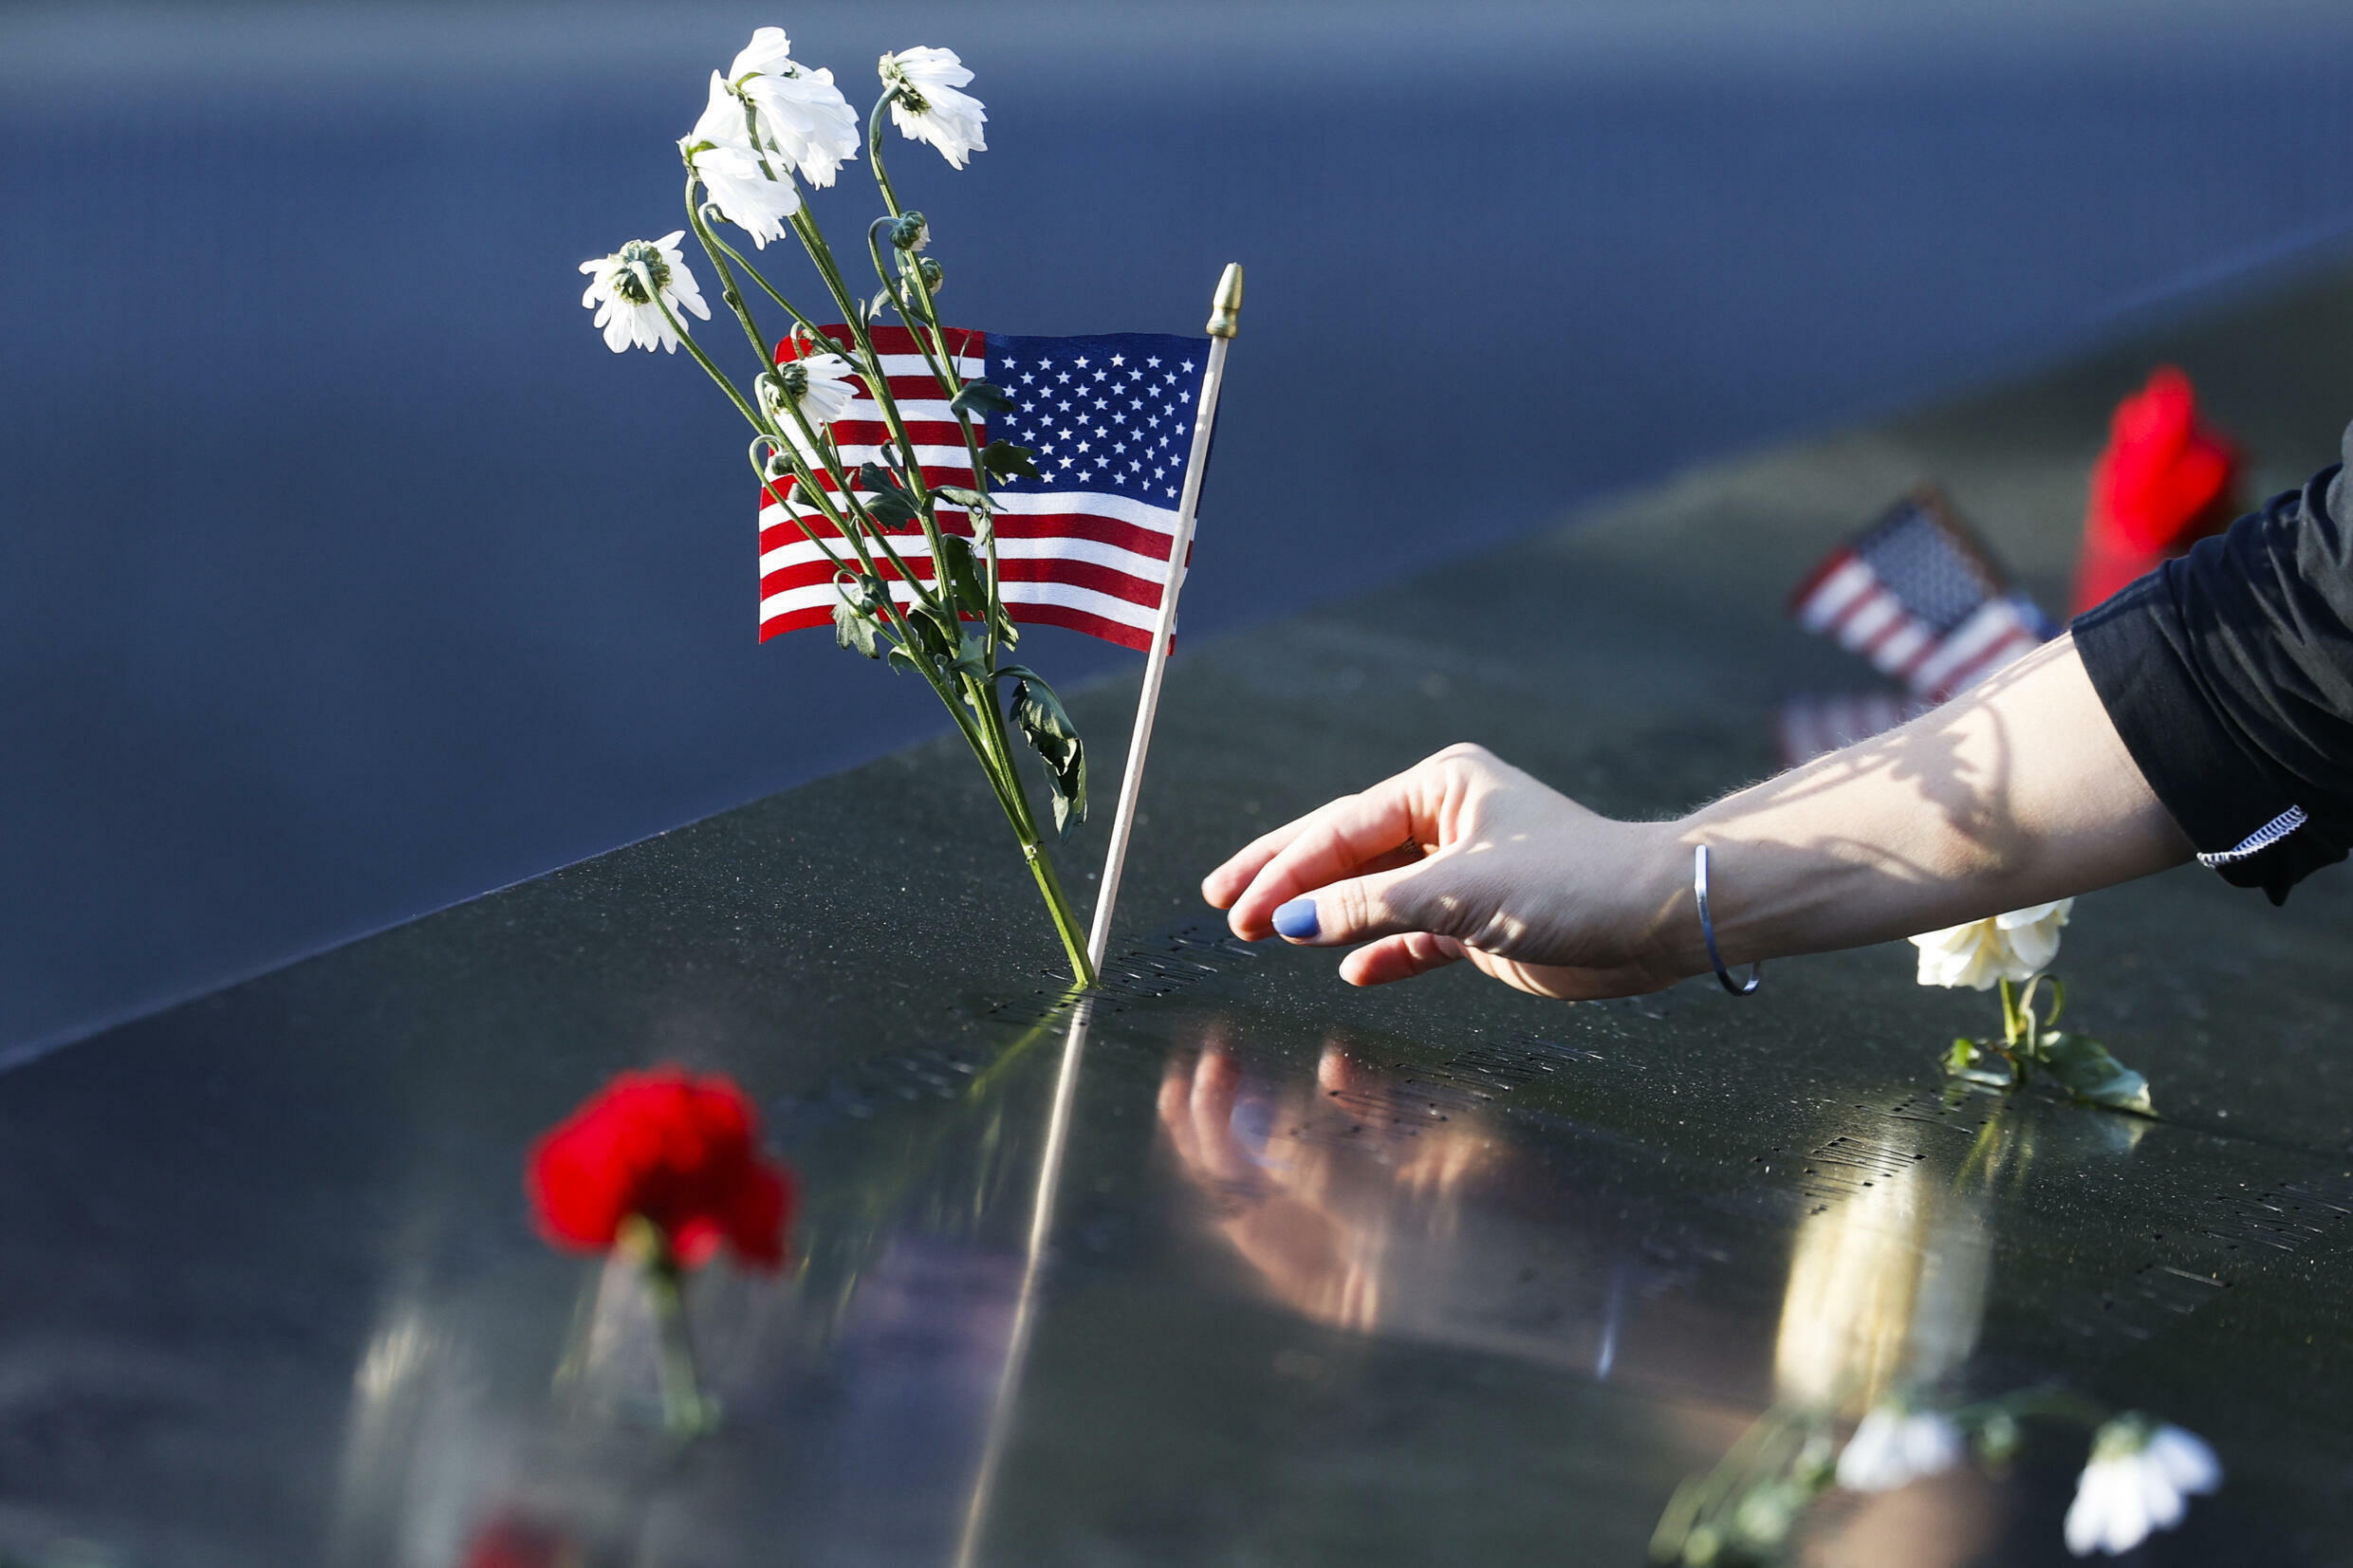 A person places flowers and a U.S. flag on a name inscribed on the National September 11 Memorial on the 20th anniversary of the terrorist attacks in New York, Saturday, Sept. 11, 2021.